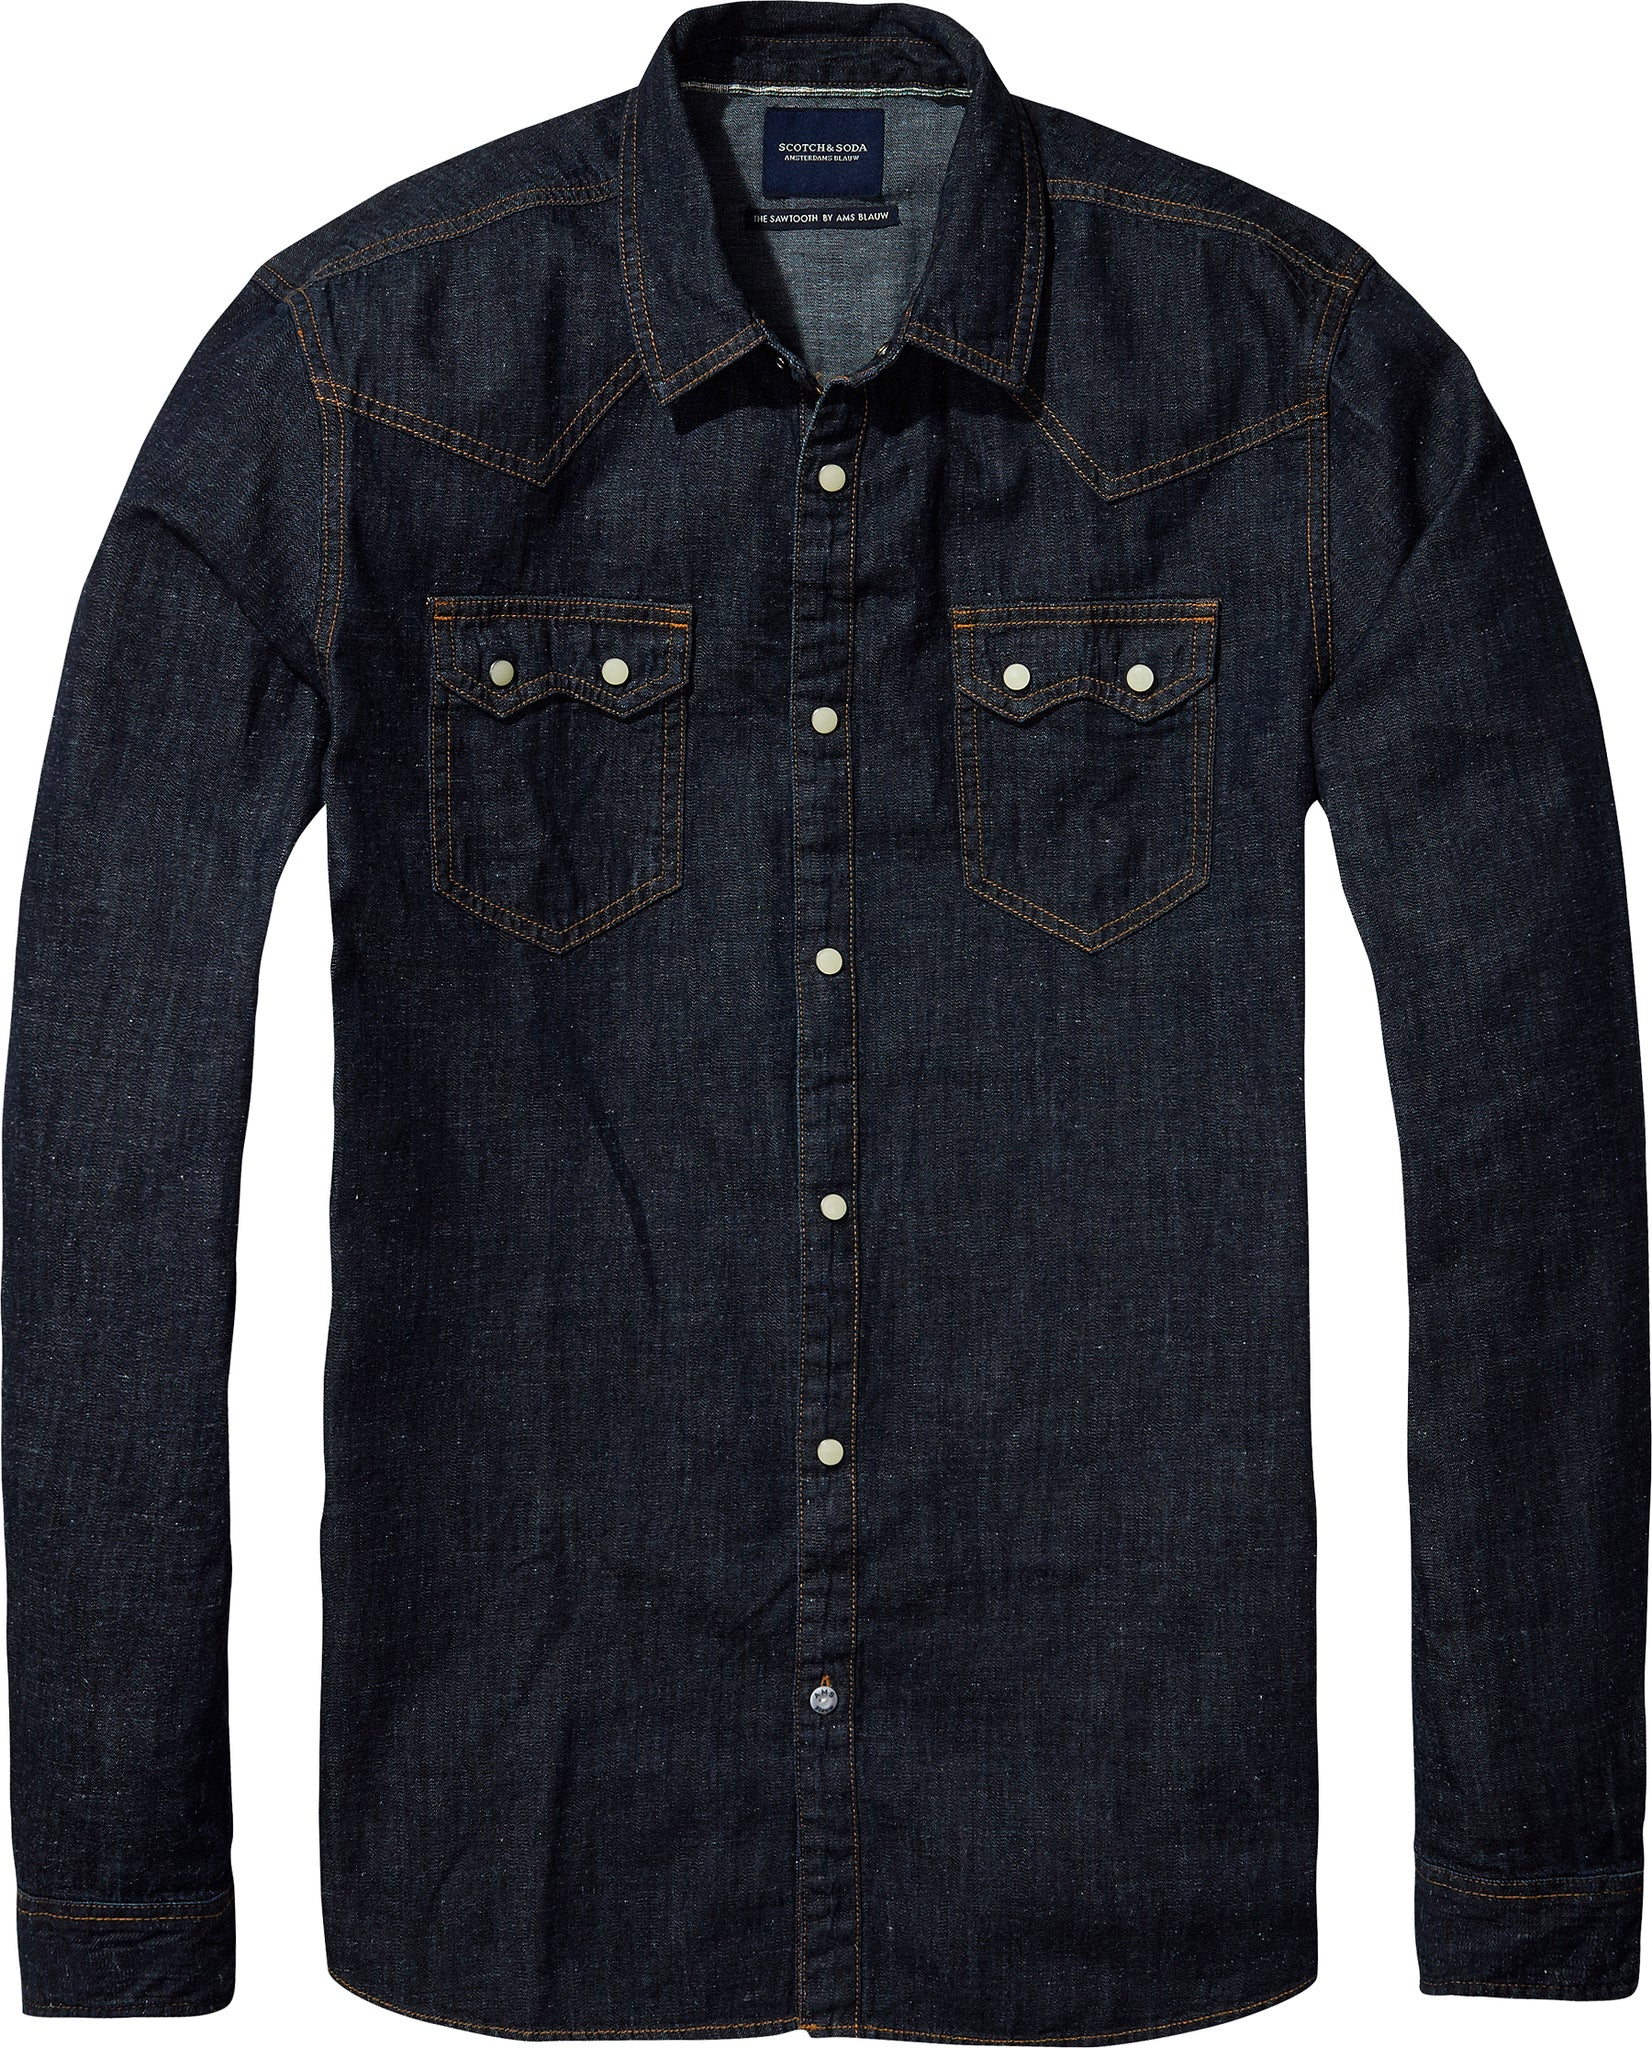 Scotch /& Soda Loose Light Weight Cotton Shirt with Pleating Chemise Fille